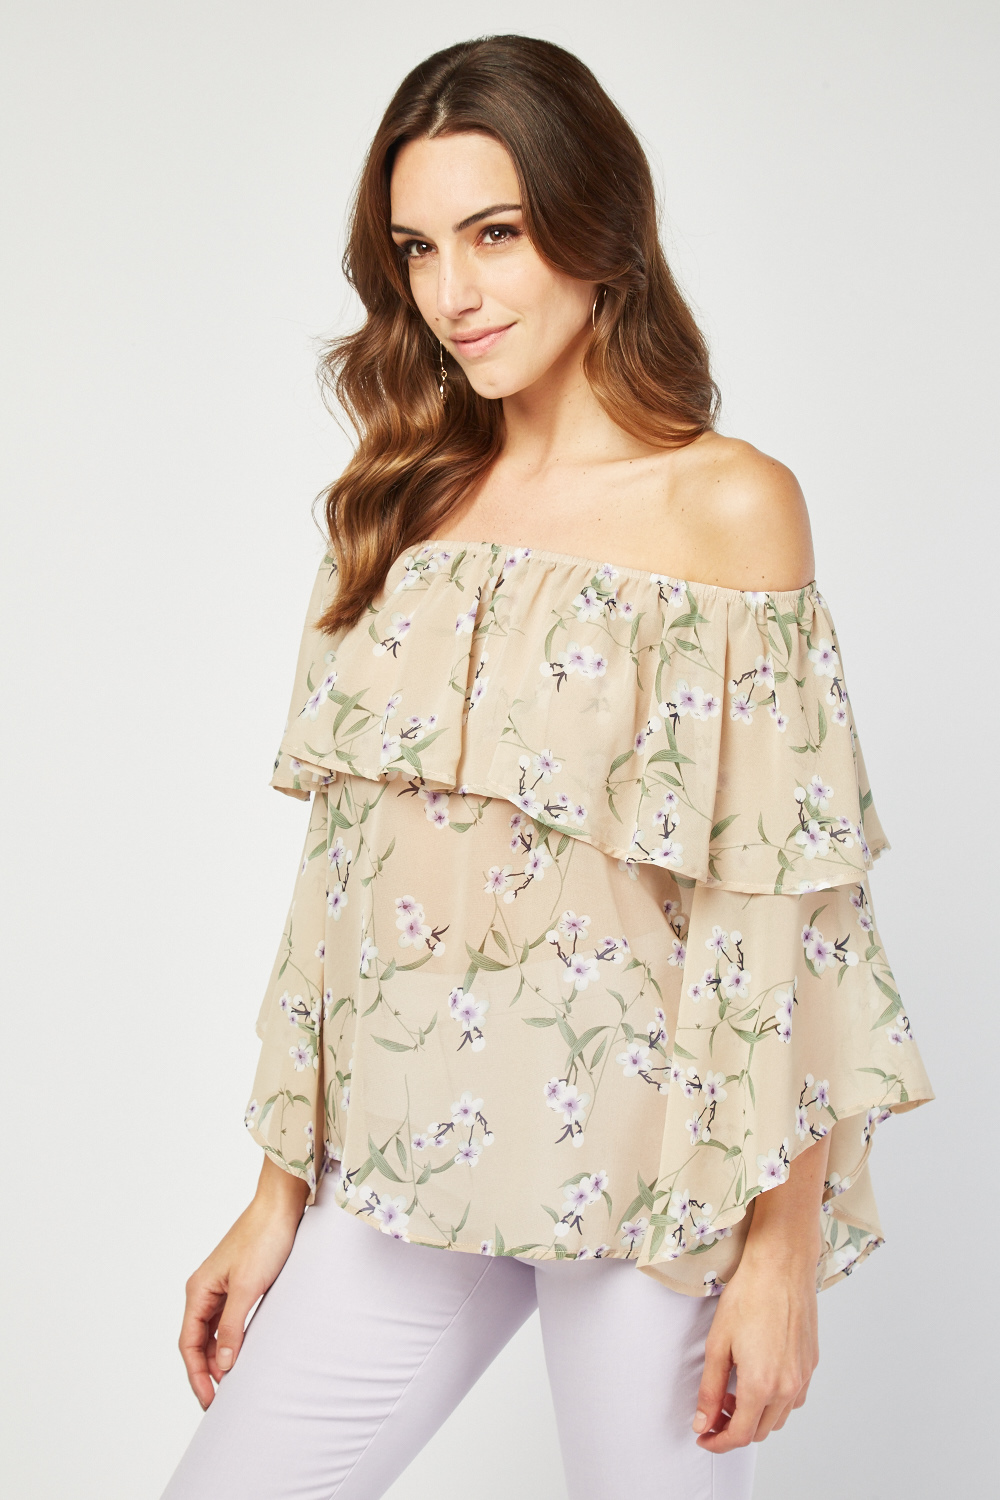 64d5412f00bfd7 Ruffle Overlay Bardot Style Top - Beige or Violet - Just £5